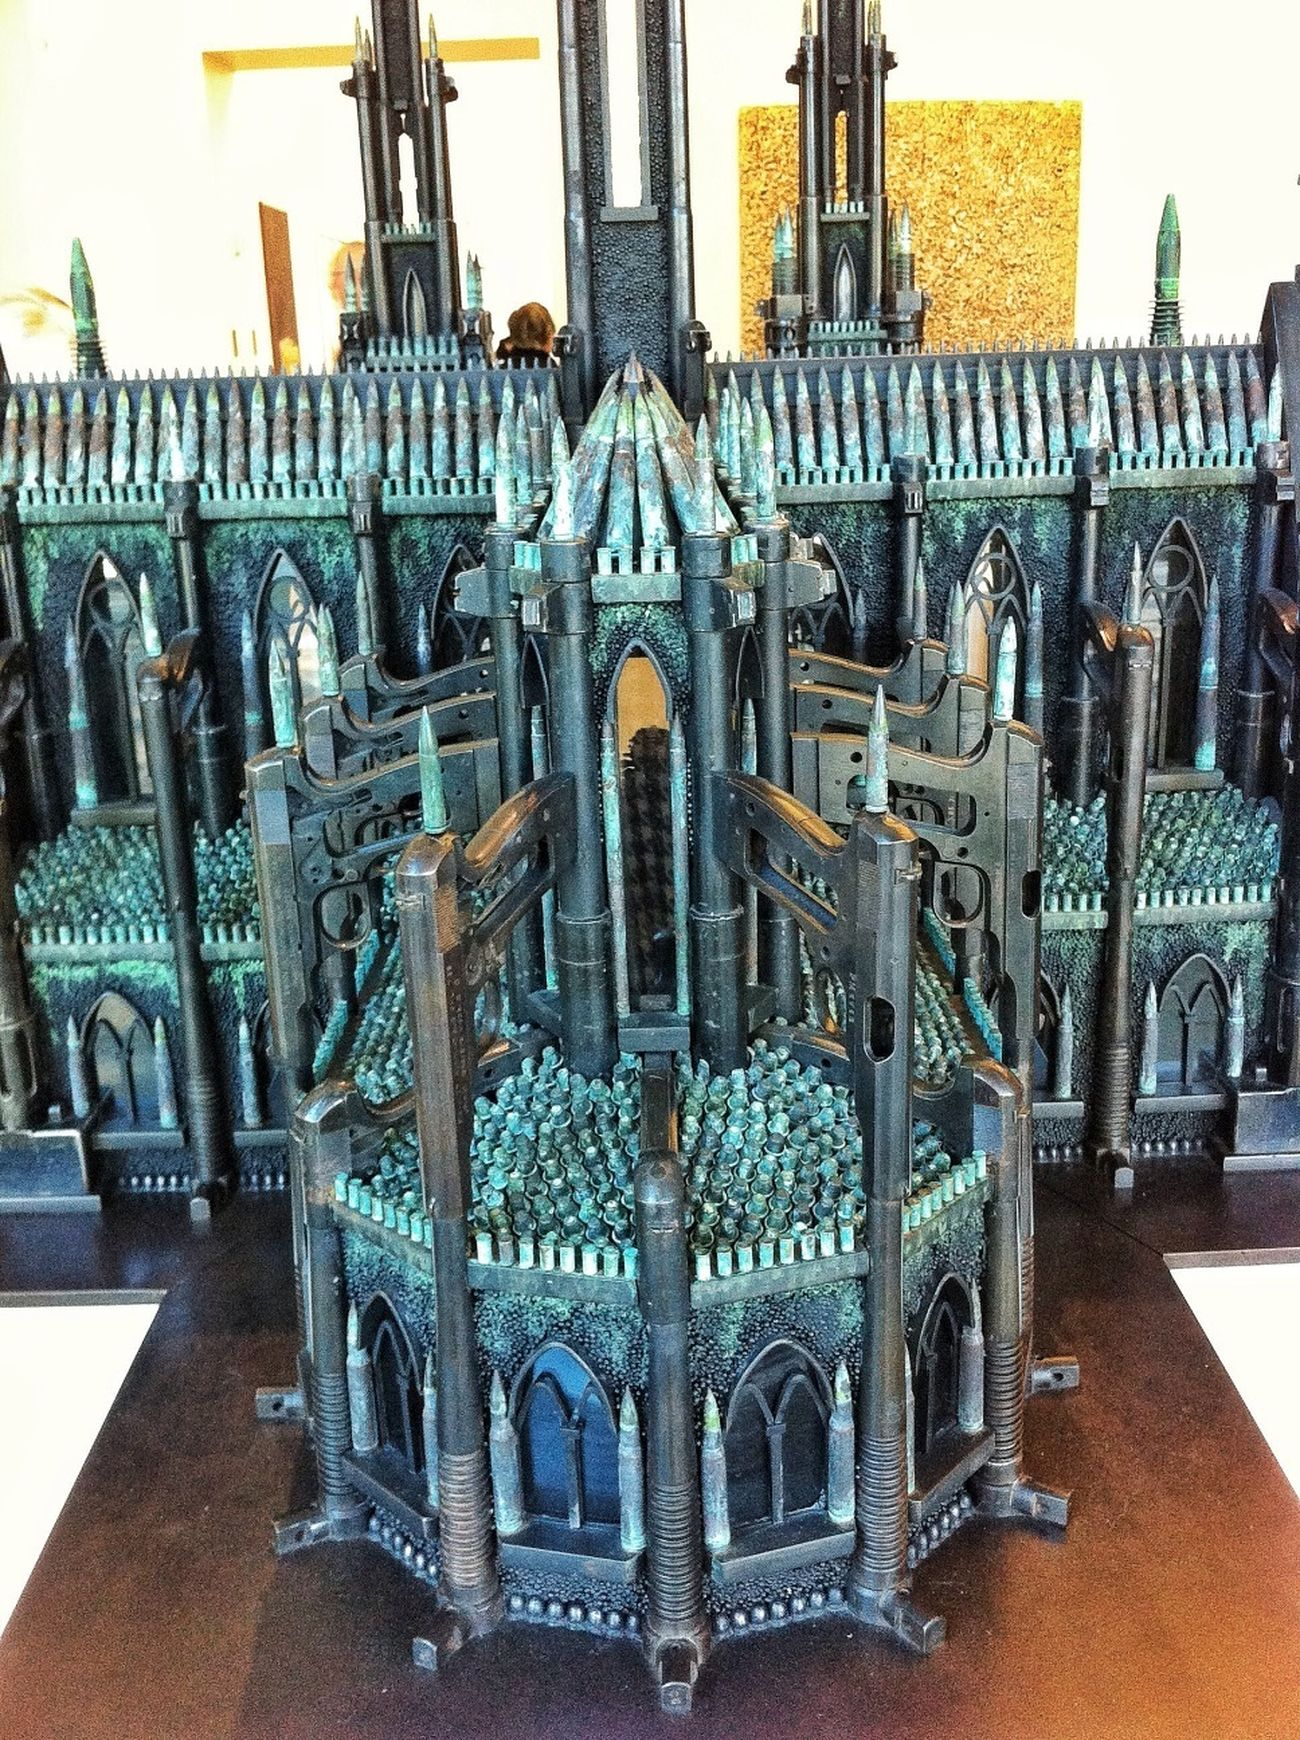 Cathedral made of guns and bullets sculpture